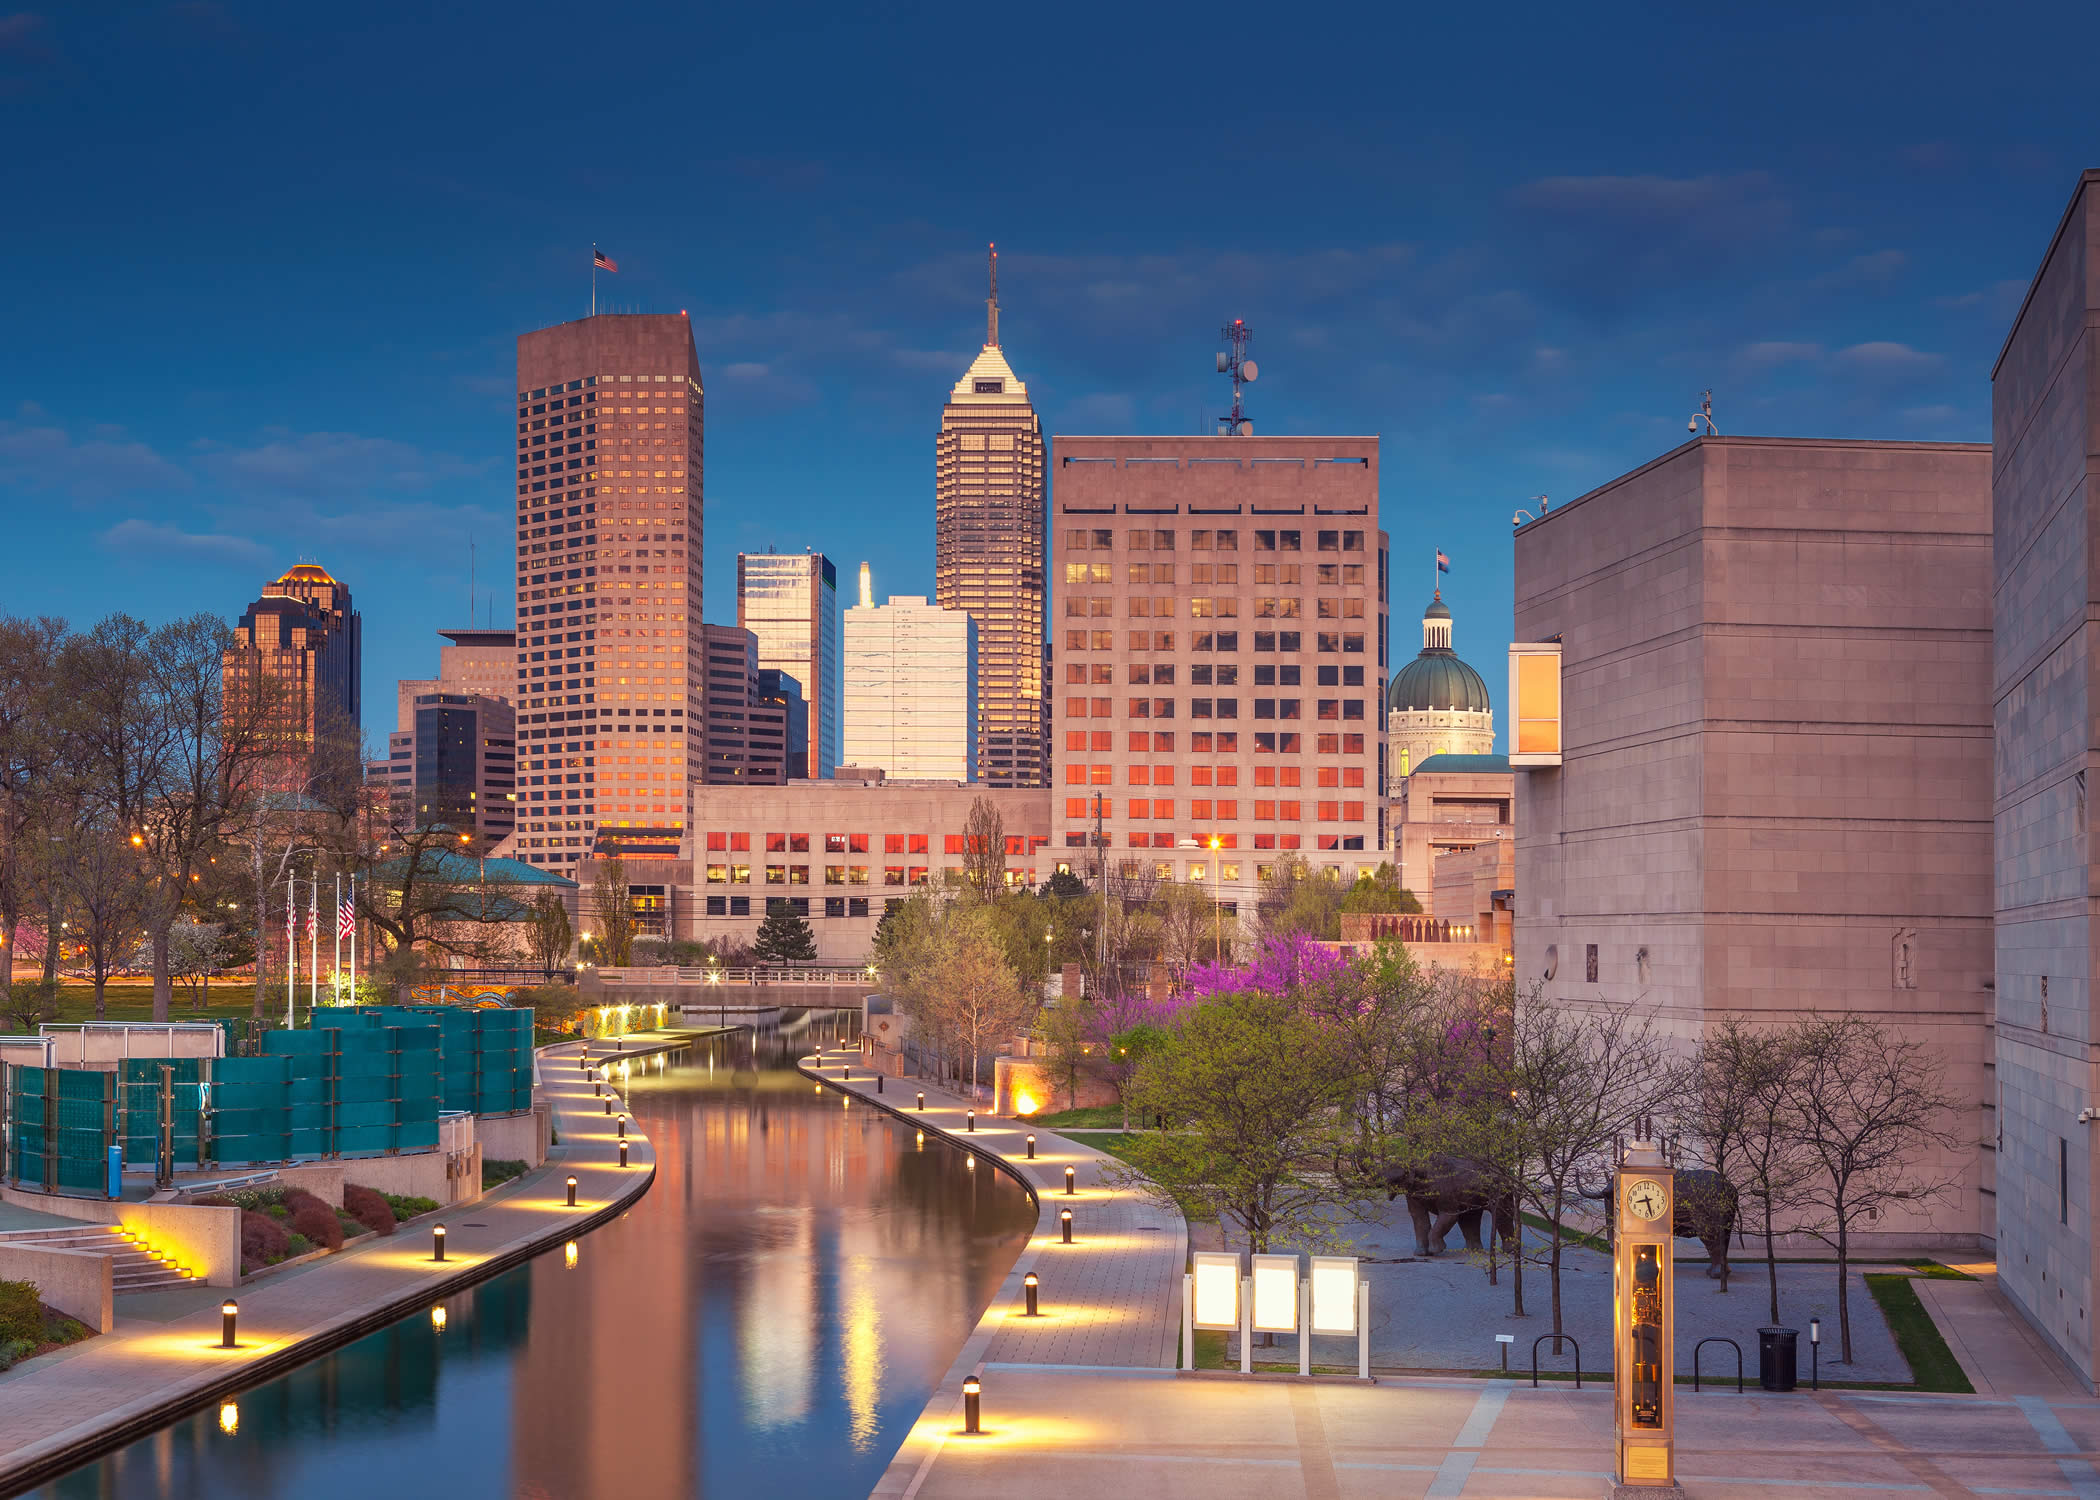 Friday June 17, 2011 - OFCCP Regulatory and Enforcement Update - Indianapolis Industry Liaison Group Meeting - Indianapolis, Indiana